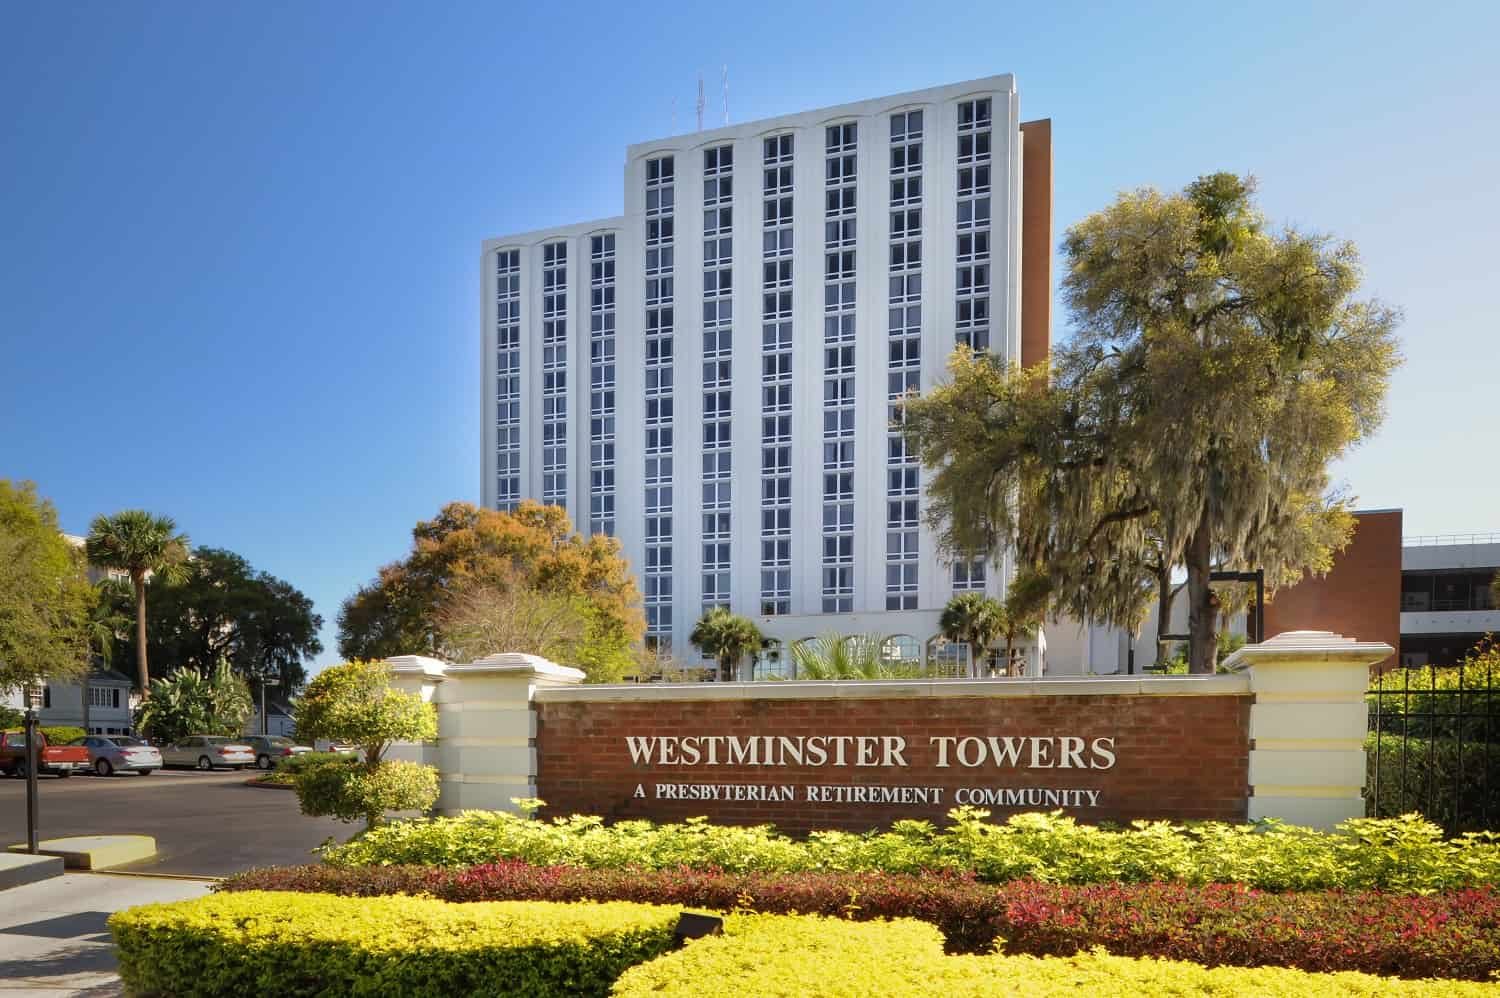 Westminster Towers Renovations